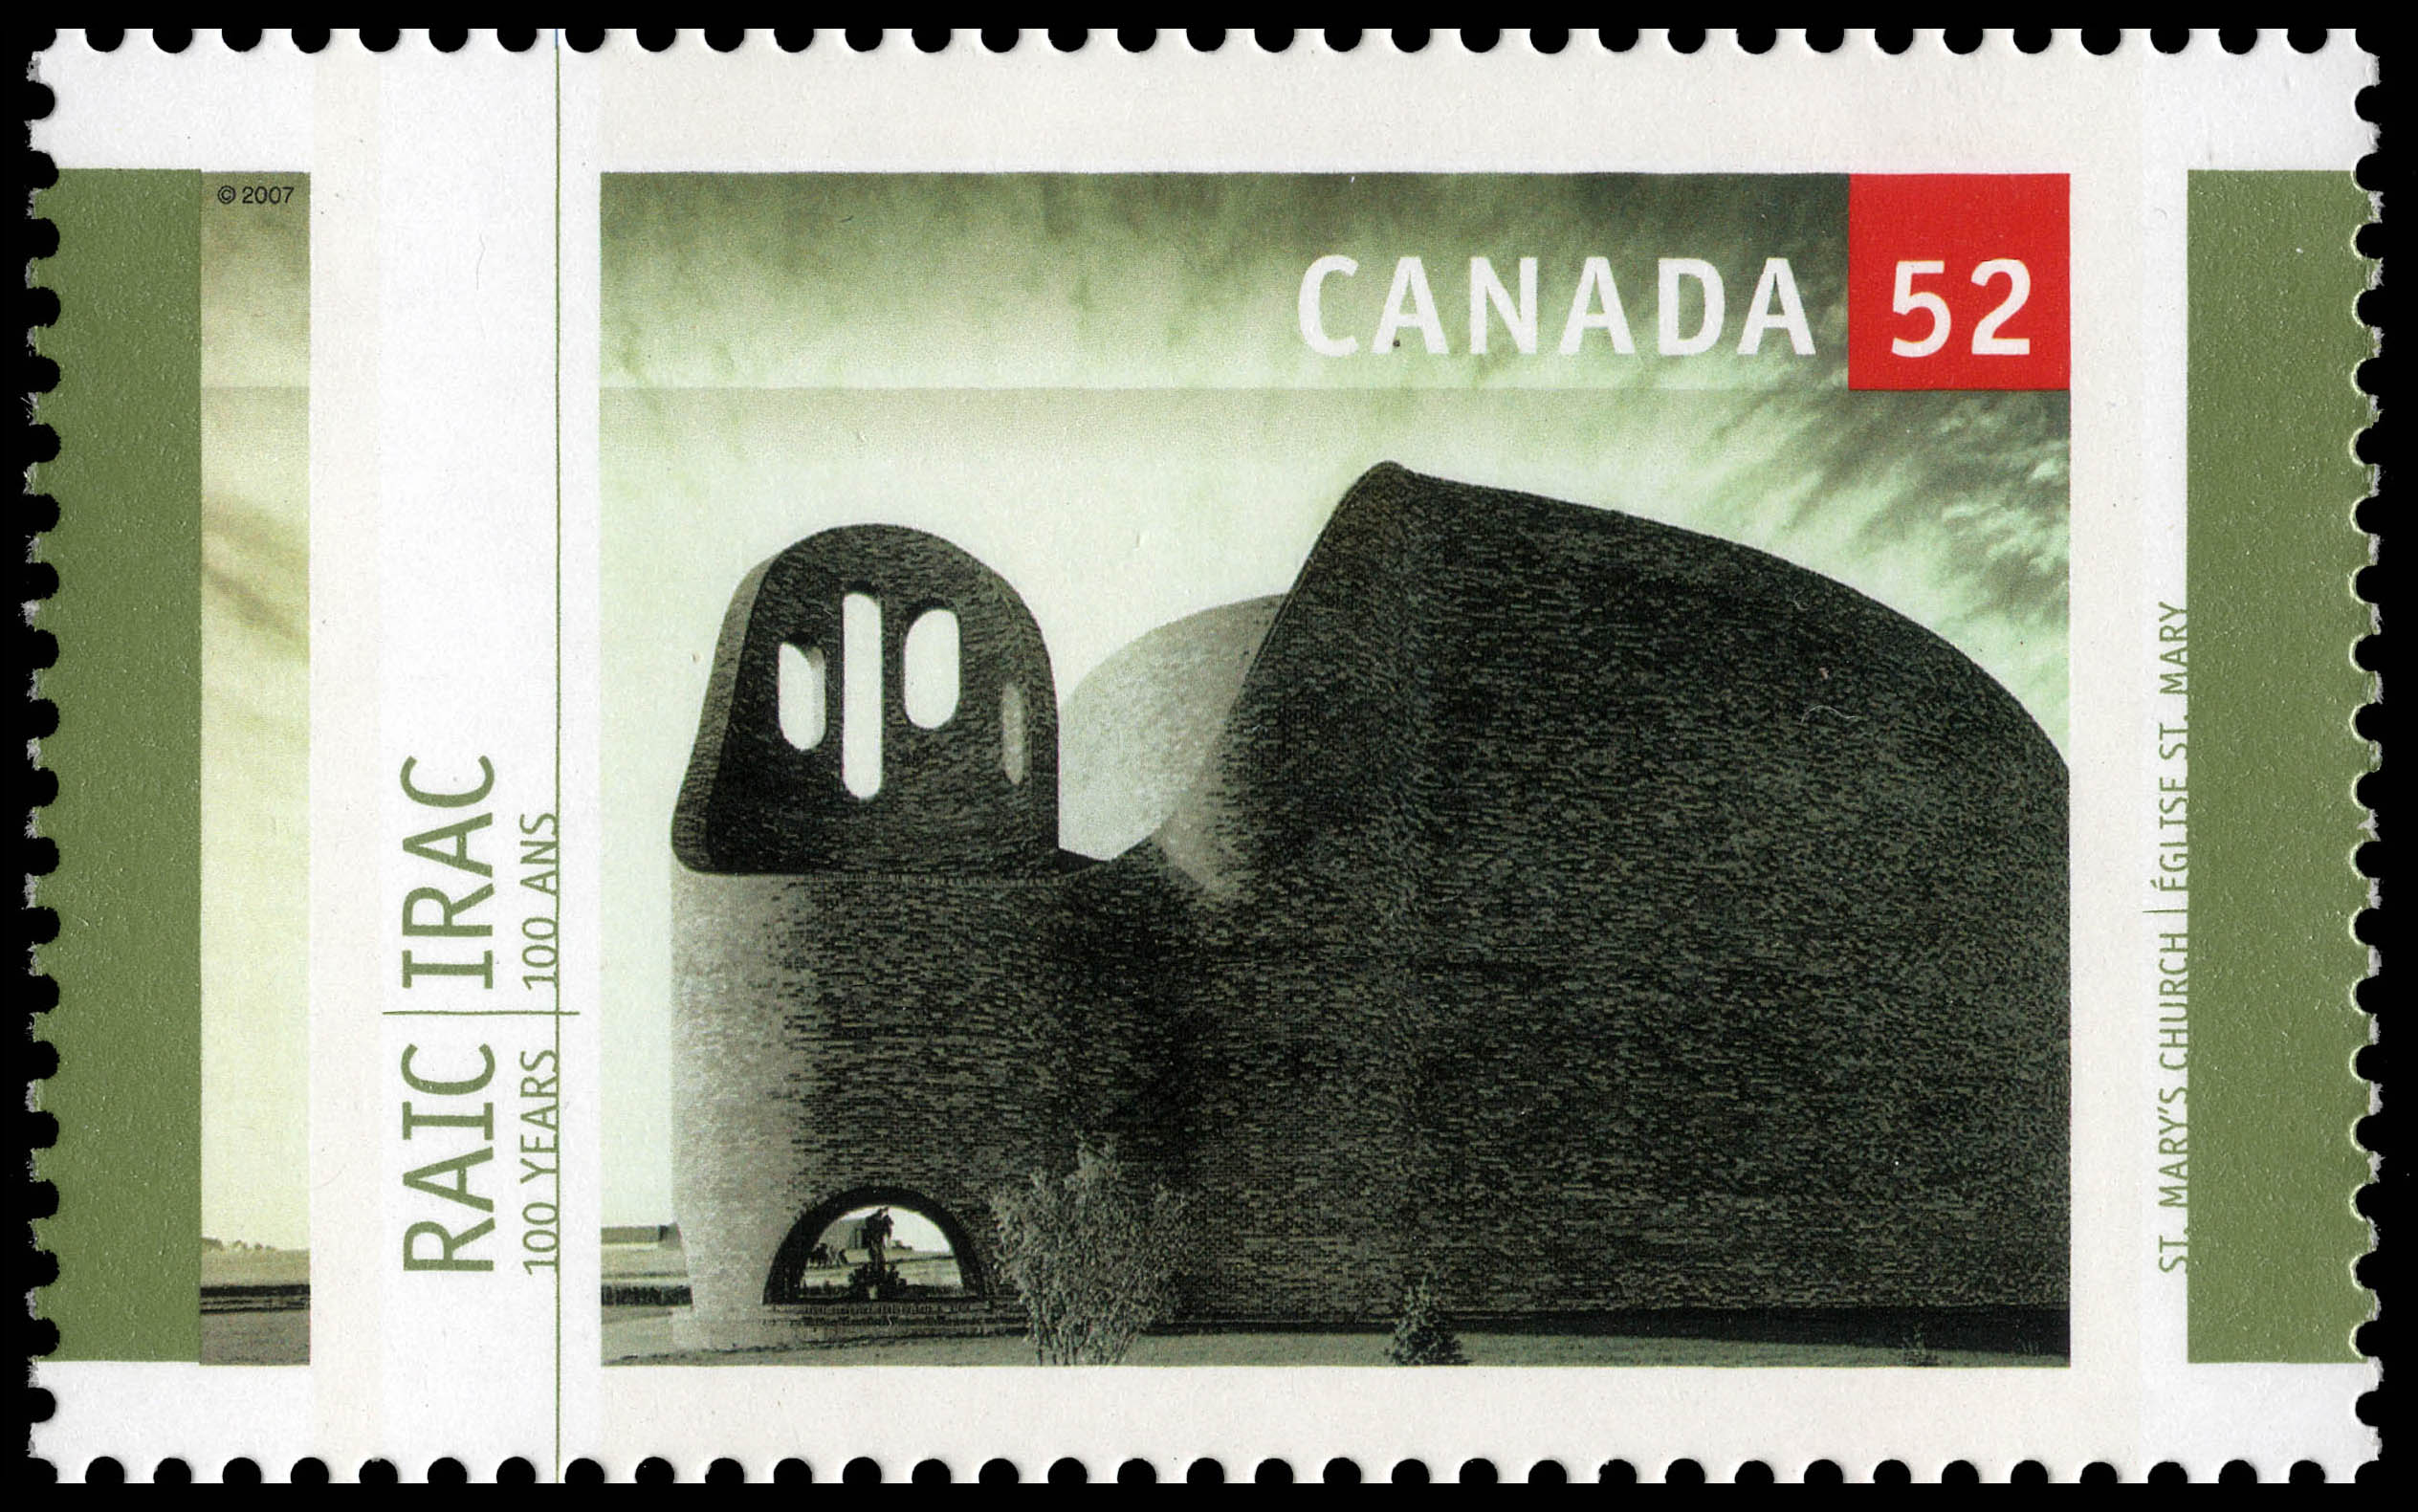 St. Mary's Church Canada Postage Stamp   Royal Architectural Institute of Canada, 100 Years